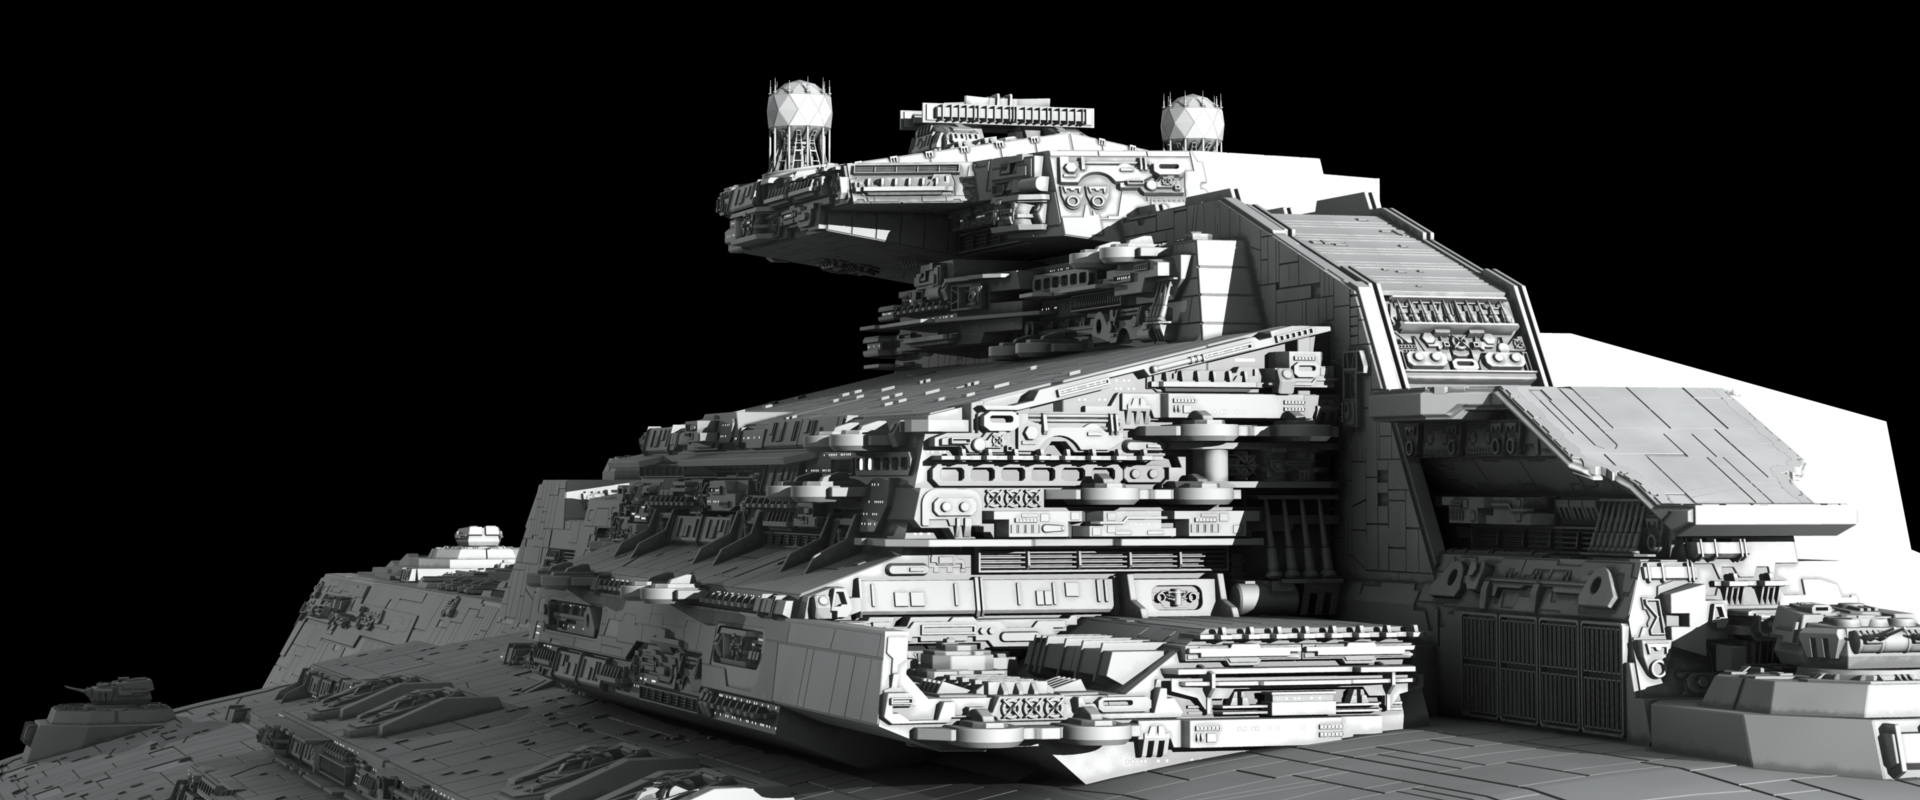 Sci Fi - Star Wars  Star Destroyer Wallpaper